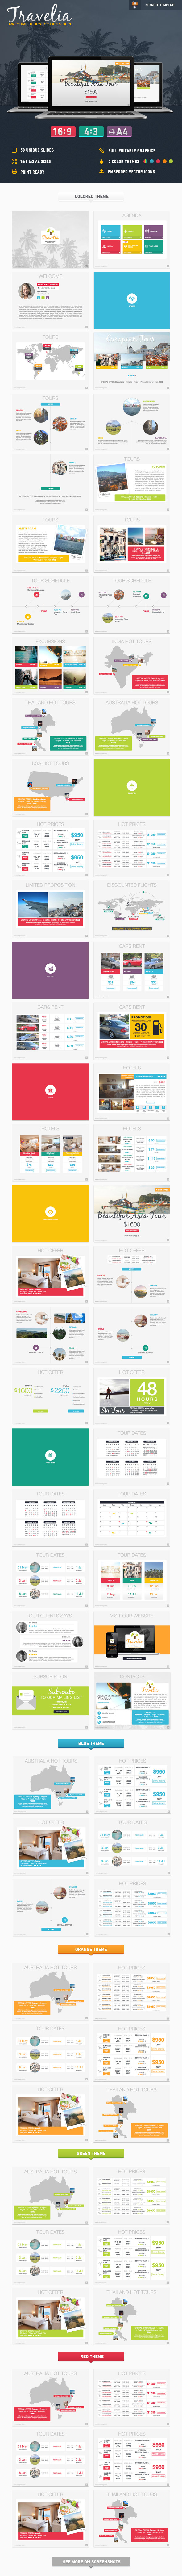 GraphicRiver Travelia Keynote Presentation Template 10876318